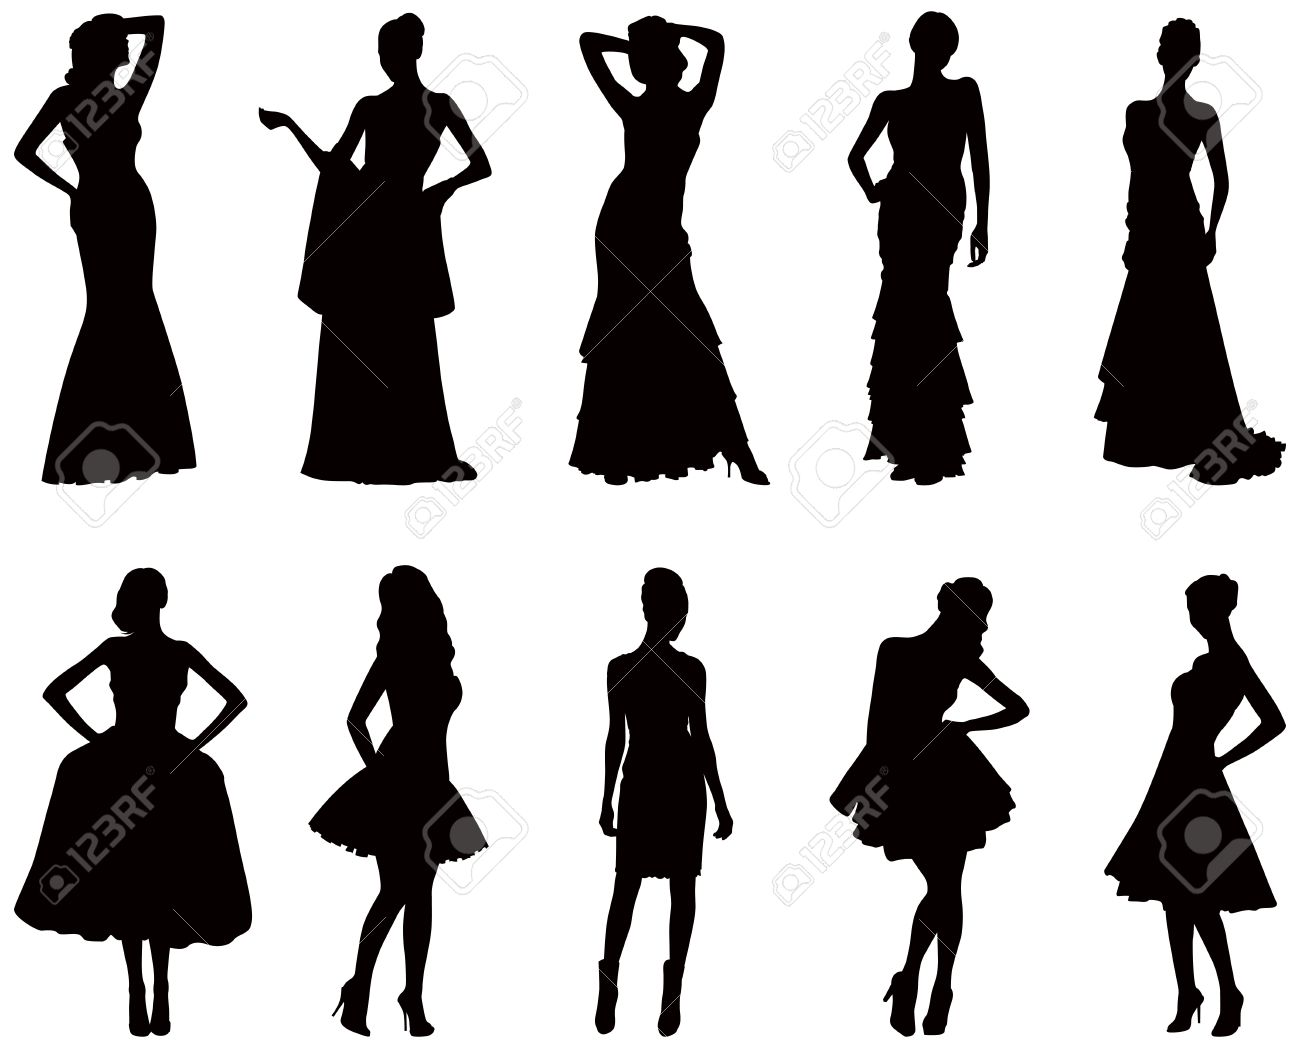 Elegant Silhouettes Of Women In Evening Dresses Royalty Free.